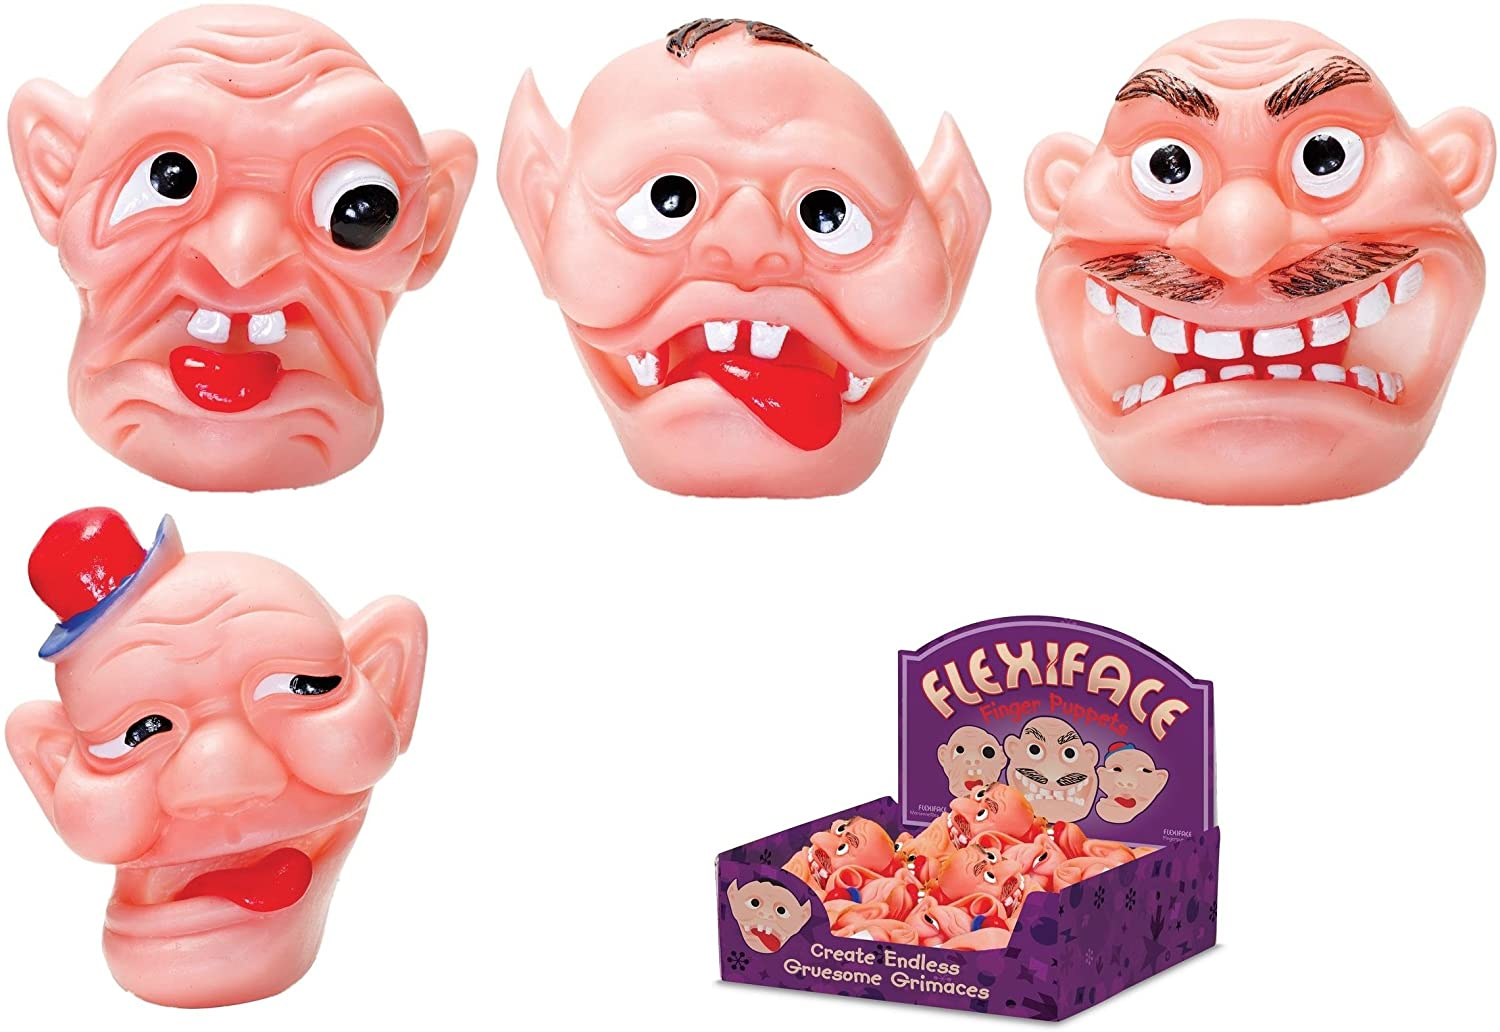 12 Cool Joke Shop Toys From The 1980s